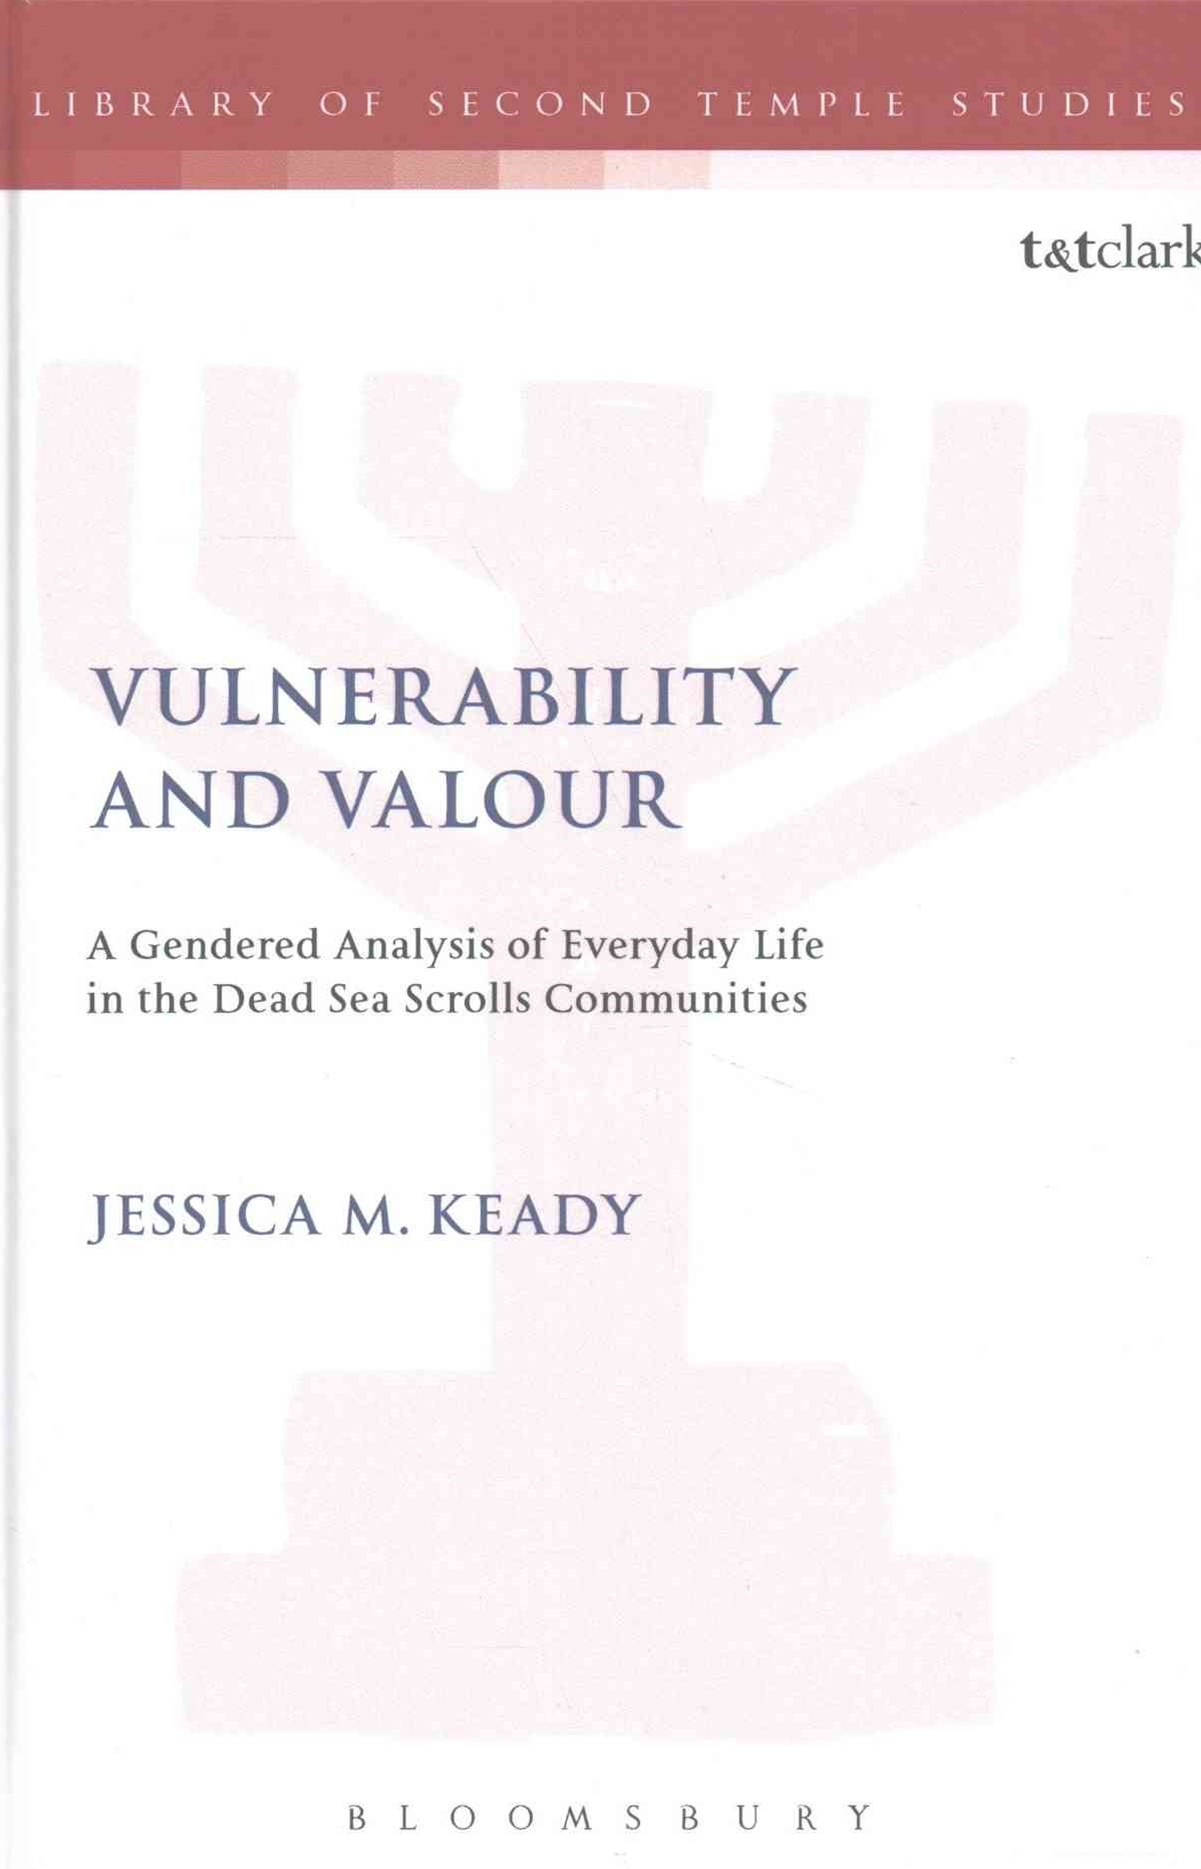 Vulnerability and Valour